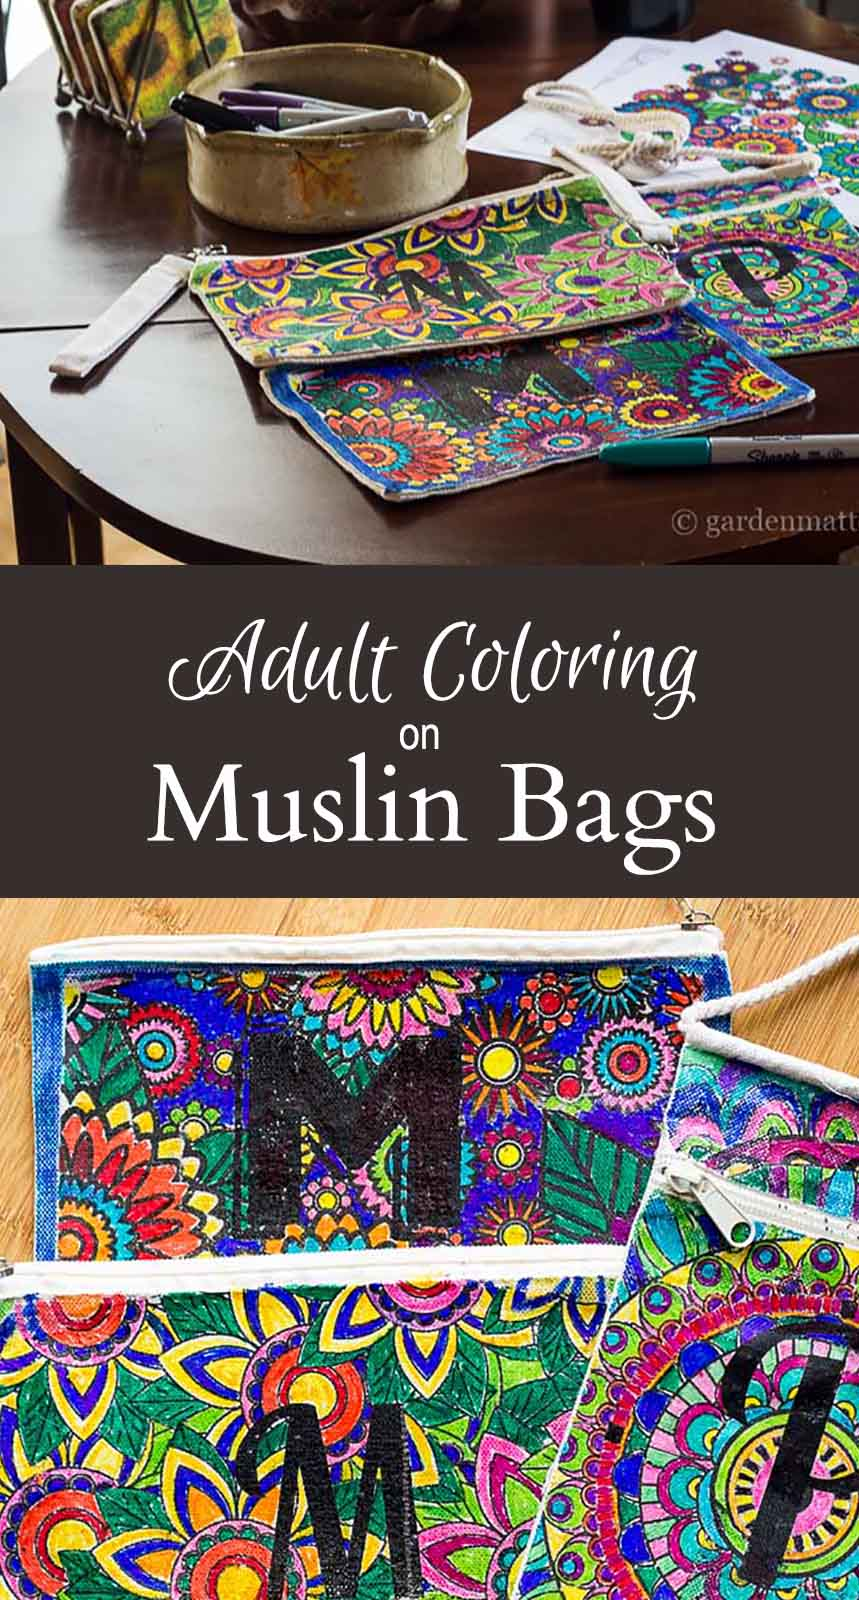 Transfer adult coloring pages onto a canvas bag. This is a fun way to spend time with your girlfriends and give them a special gift too.